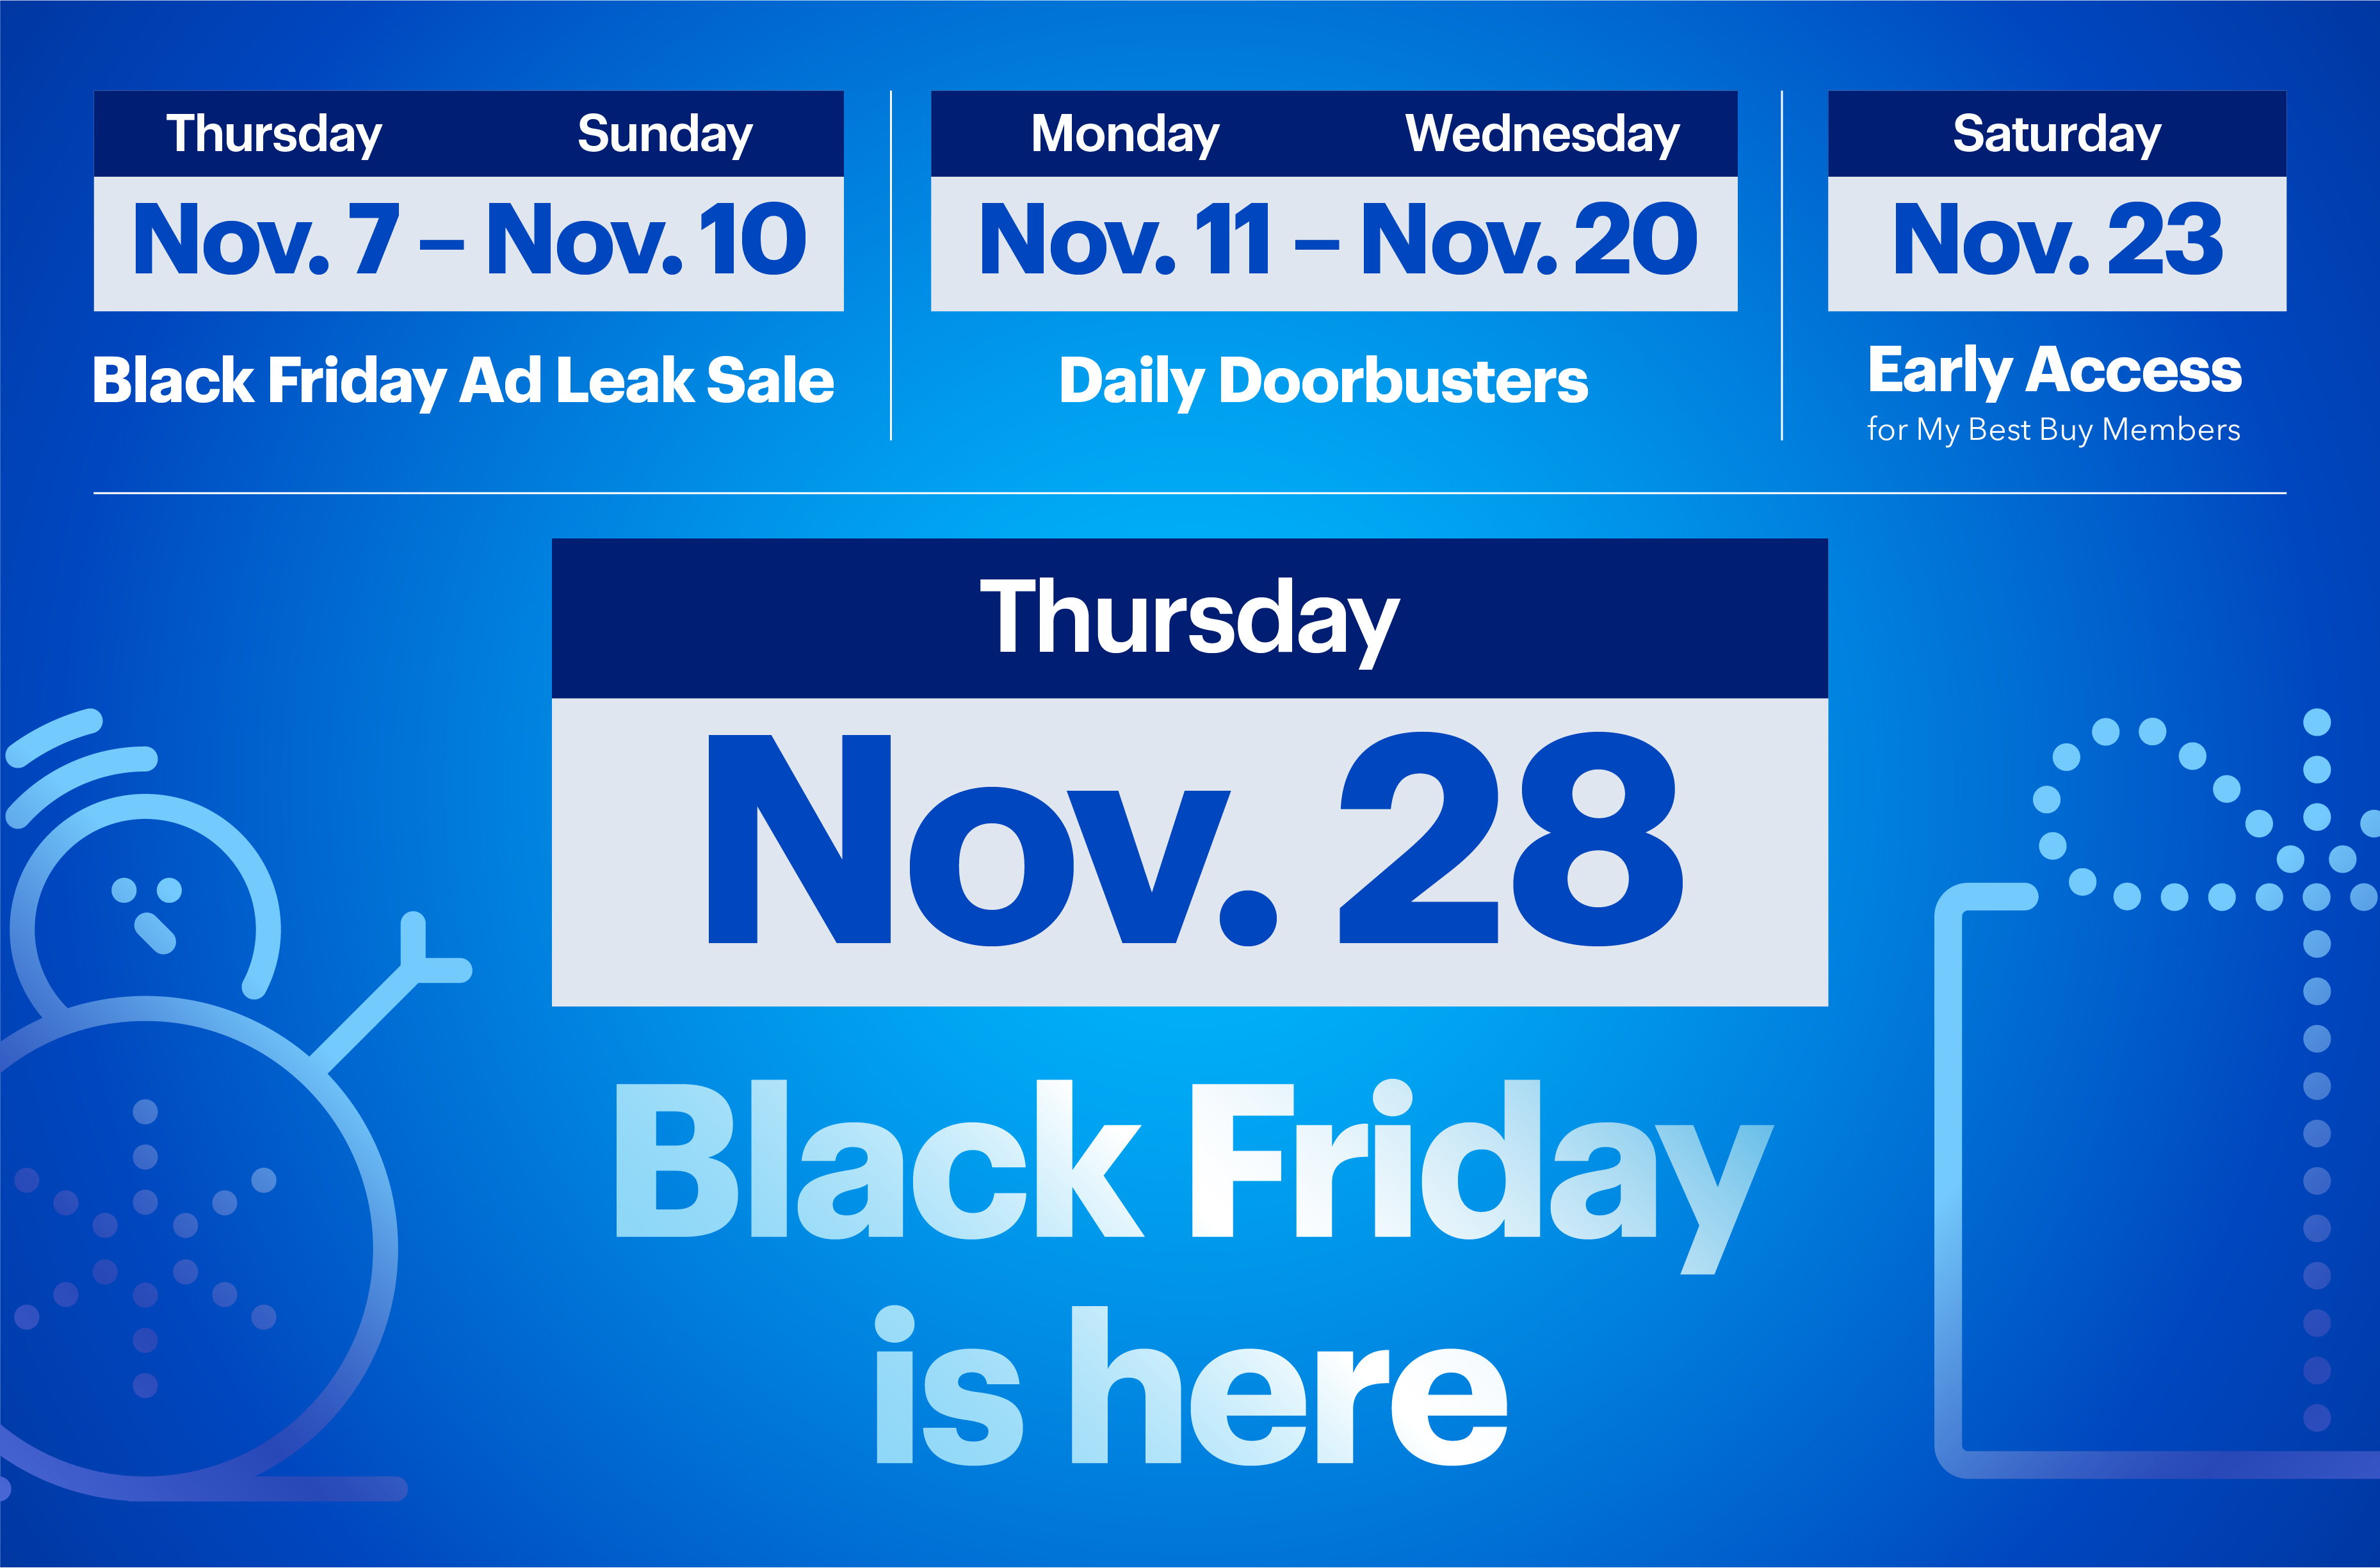 Best Buy S Black Friday Ad Is Here Hundreds Of Deals Including Apple Doorbusters Available Now Business Wire